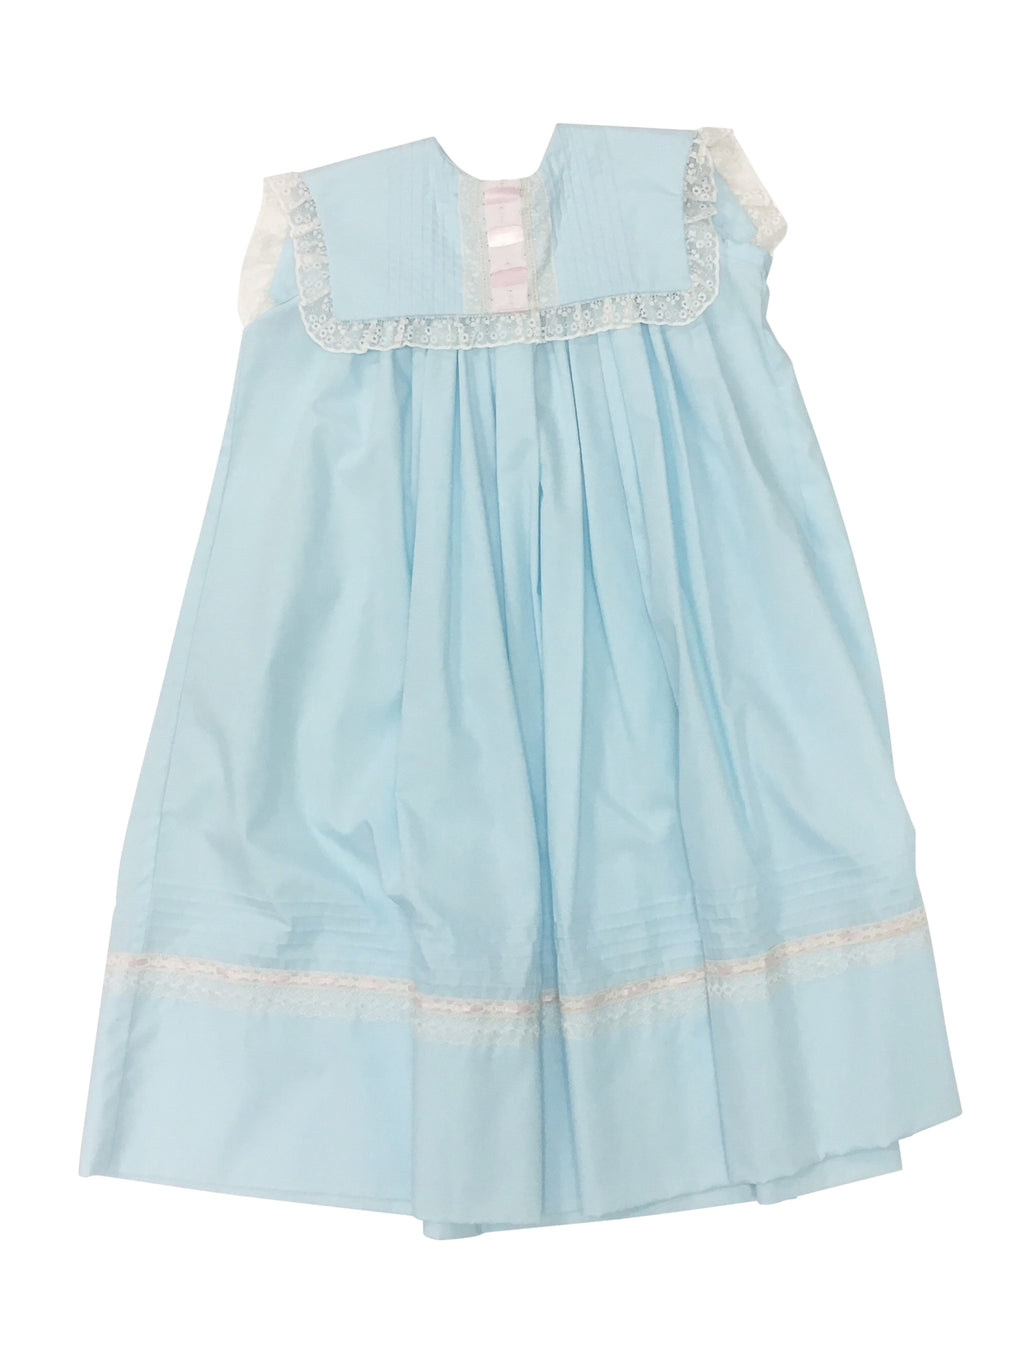 Heirloom Sleeveless Robins Egg Blue Dress with Pink Ribbon - Born Childrens Boutique